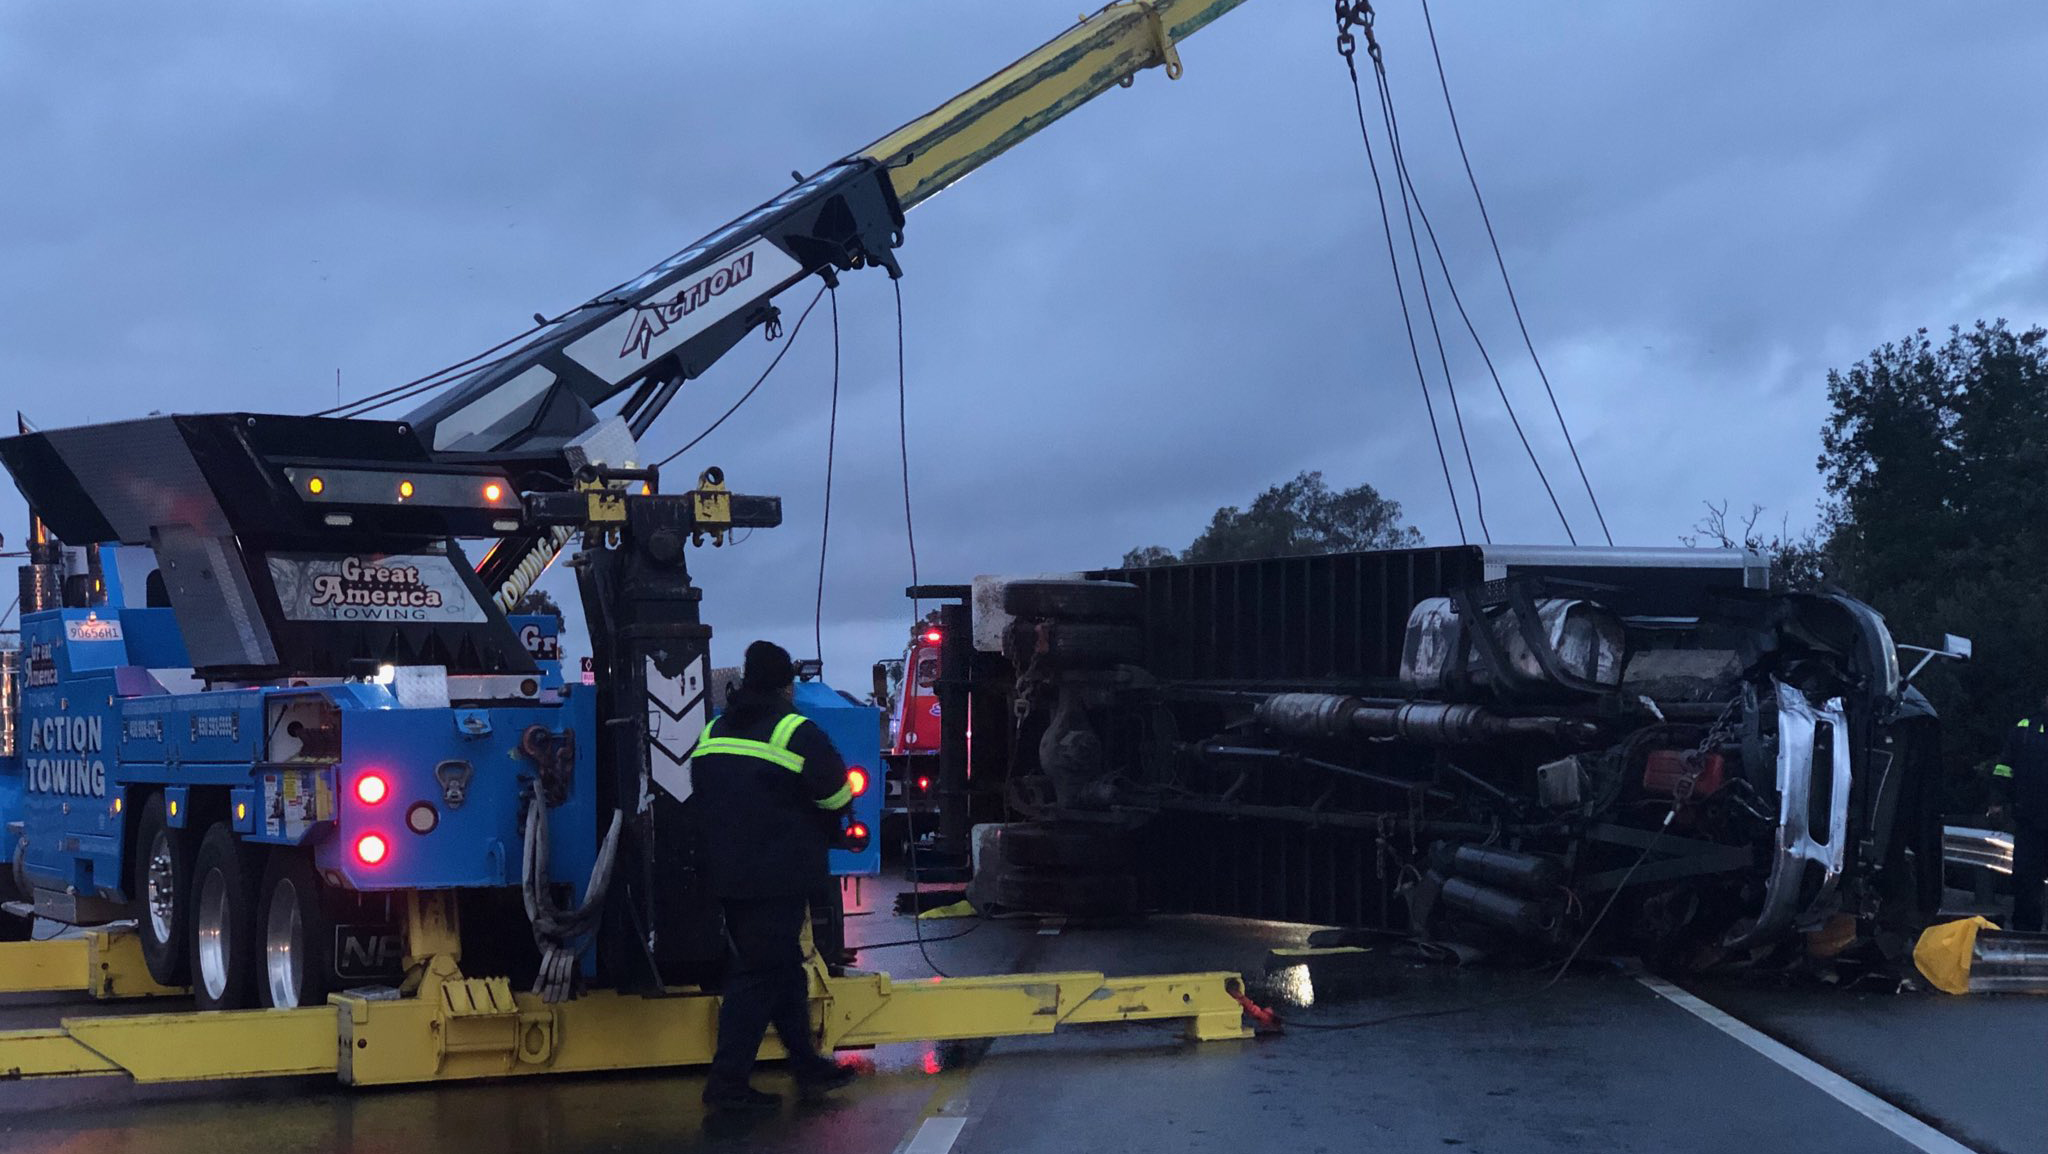 Delivery truck accident on Highway 101 in San Jose, California on Wednesday, January 9, 2019.